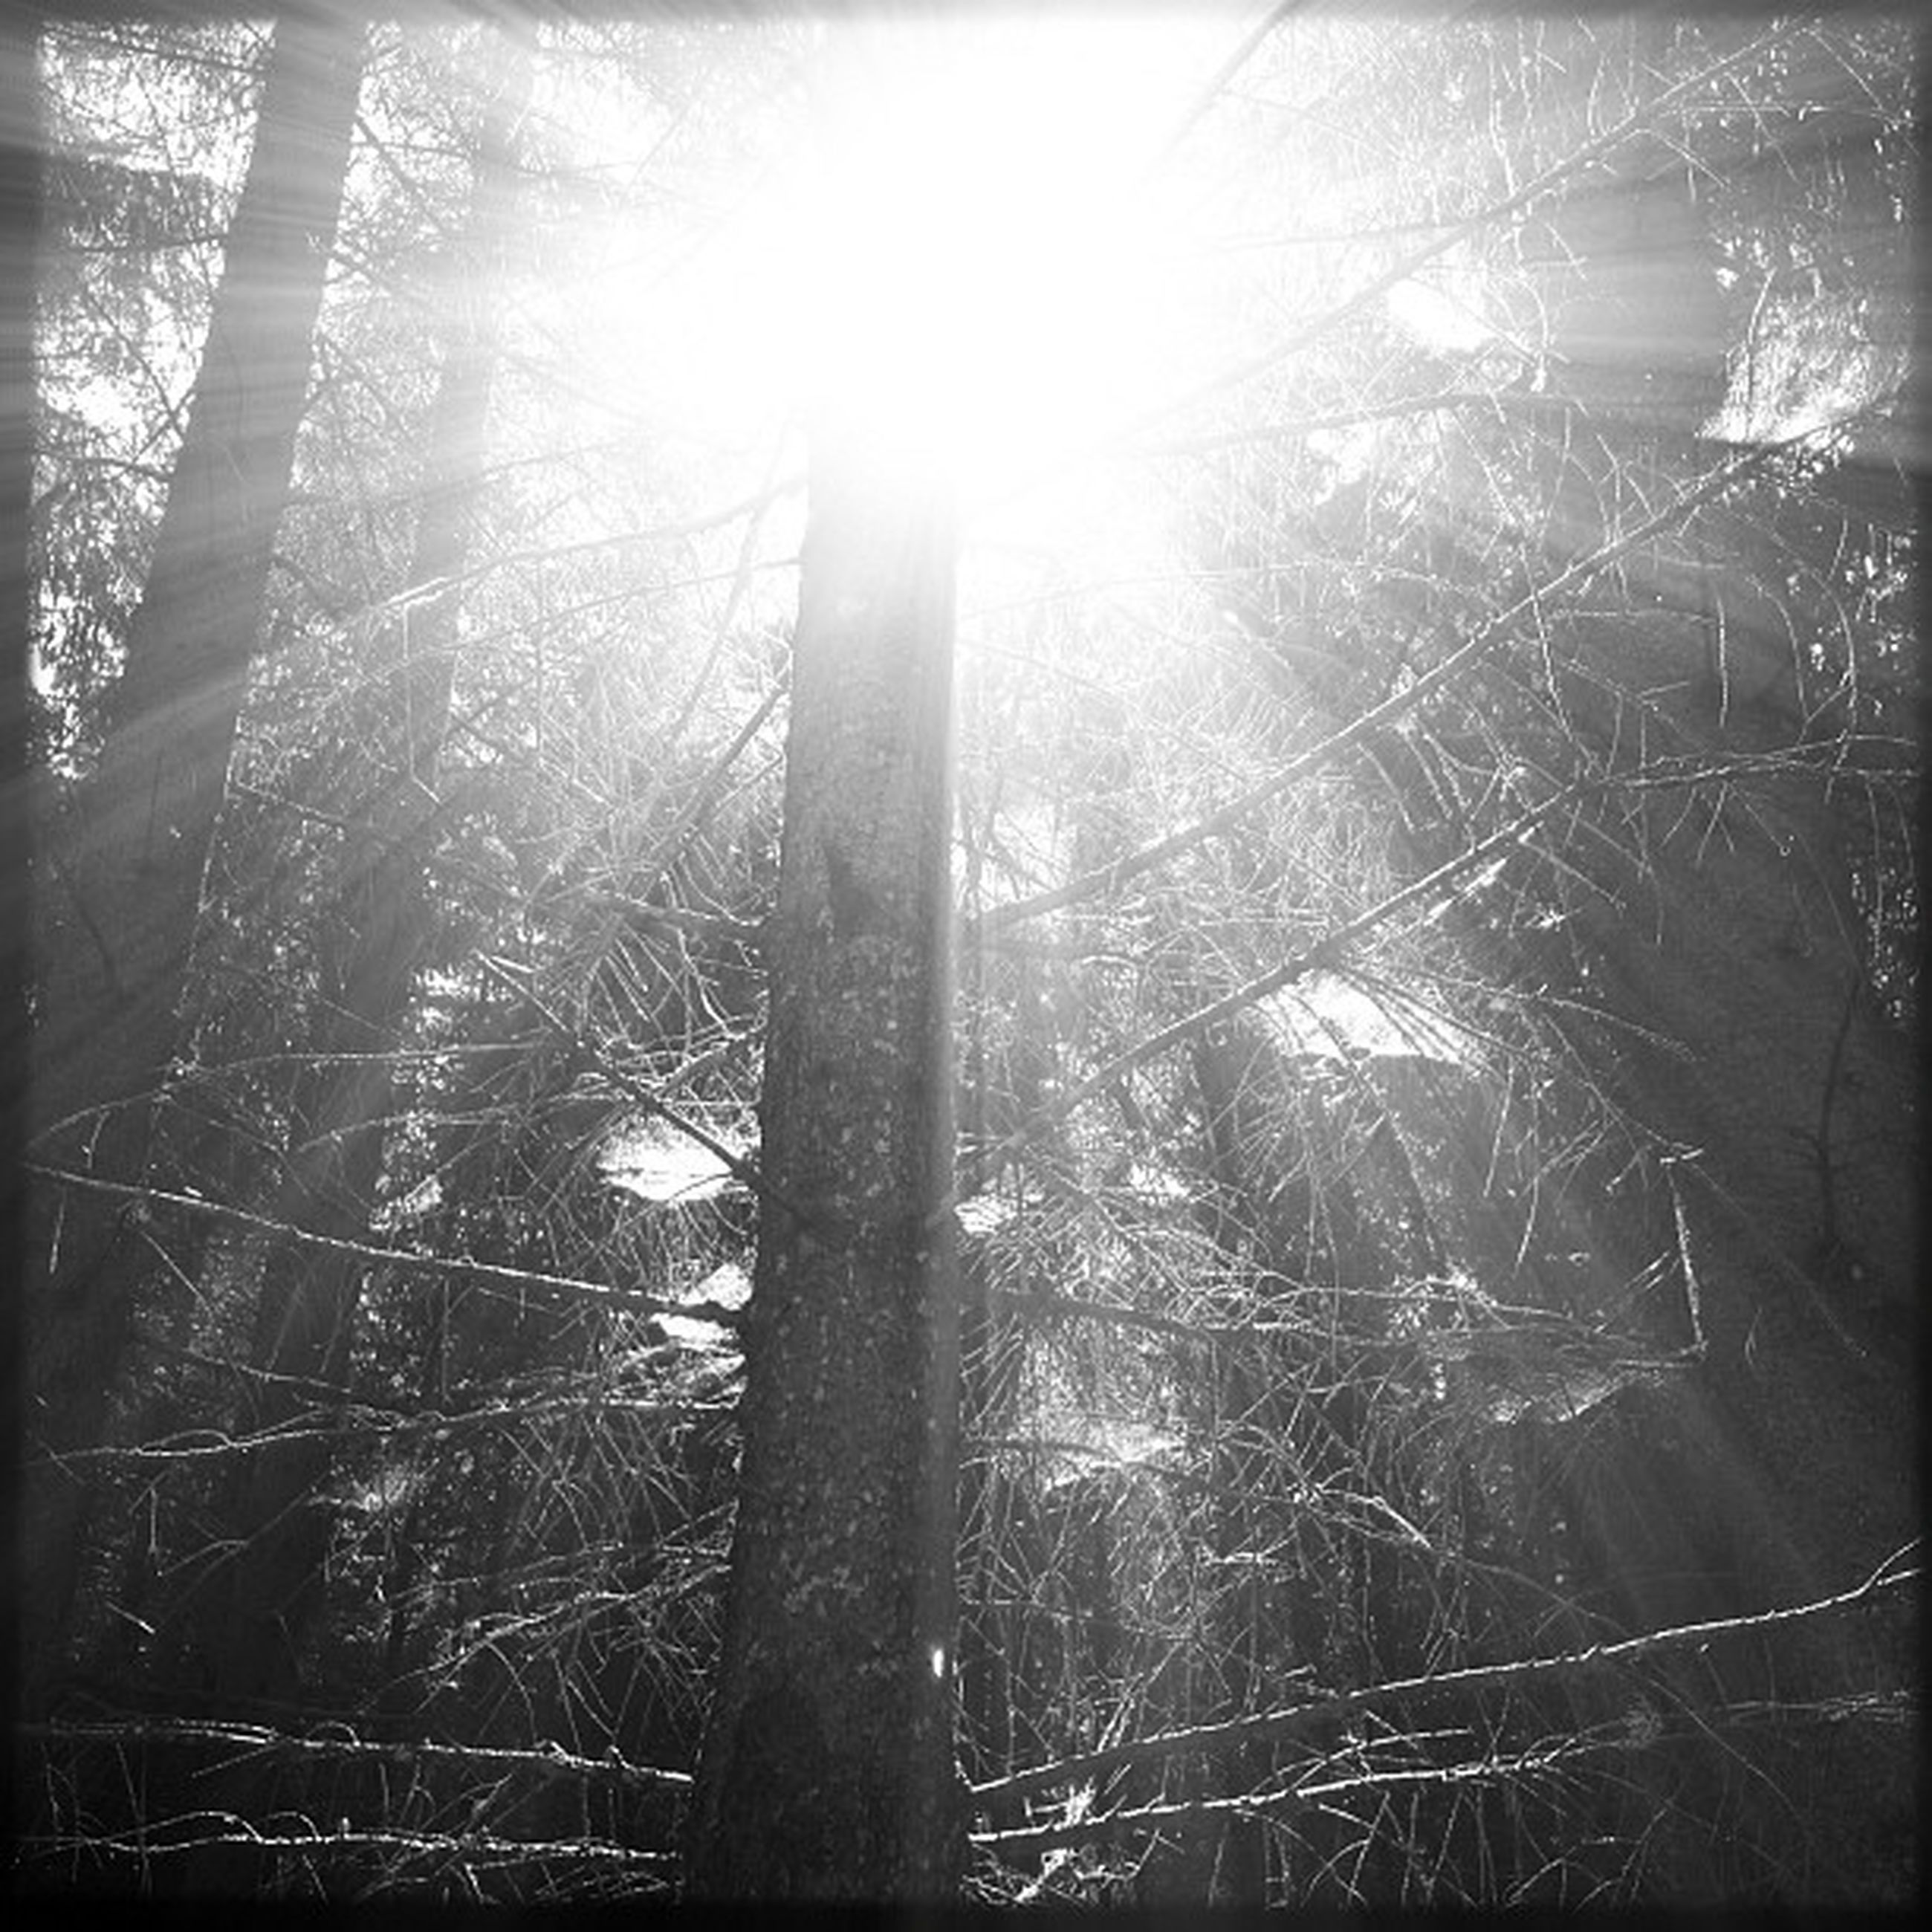 sun, tree, sunbeam, sunlight, lens flare, tranquility, tree trunk, nature, low angle view, growth, forest, branch, beauty in nature, bright, sunny, back lit, day, woodland, tranquil scene, scenics